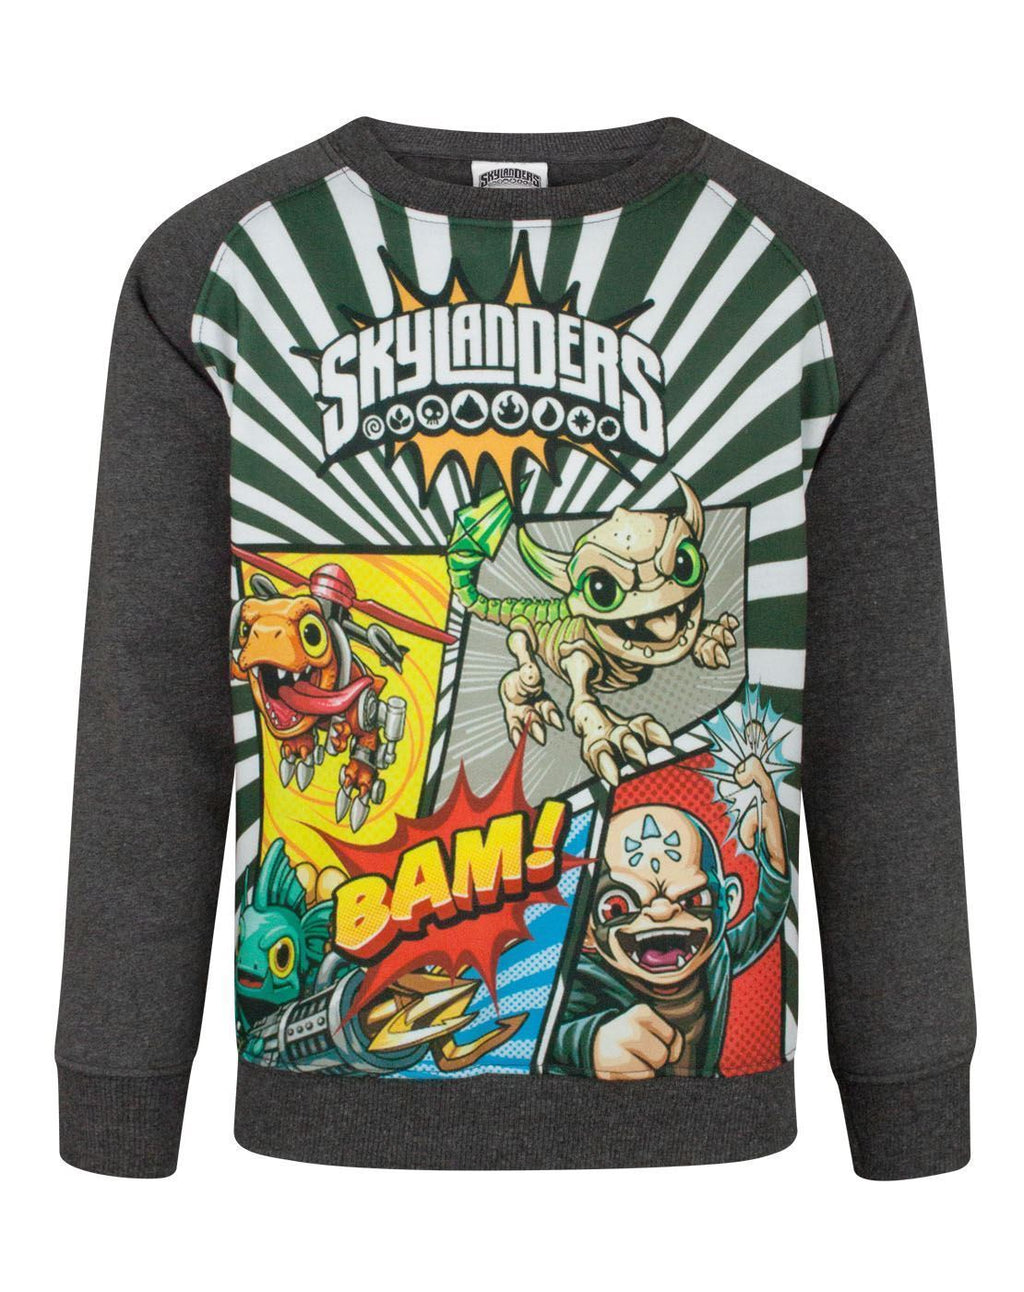 Skylanders Panels Boy's Sweatshirt